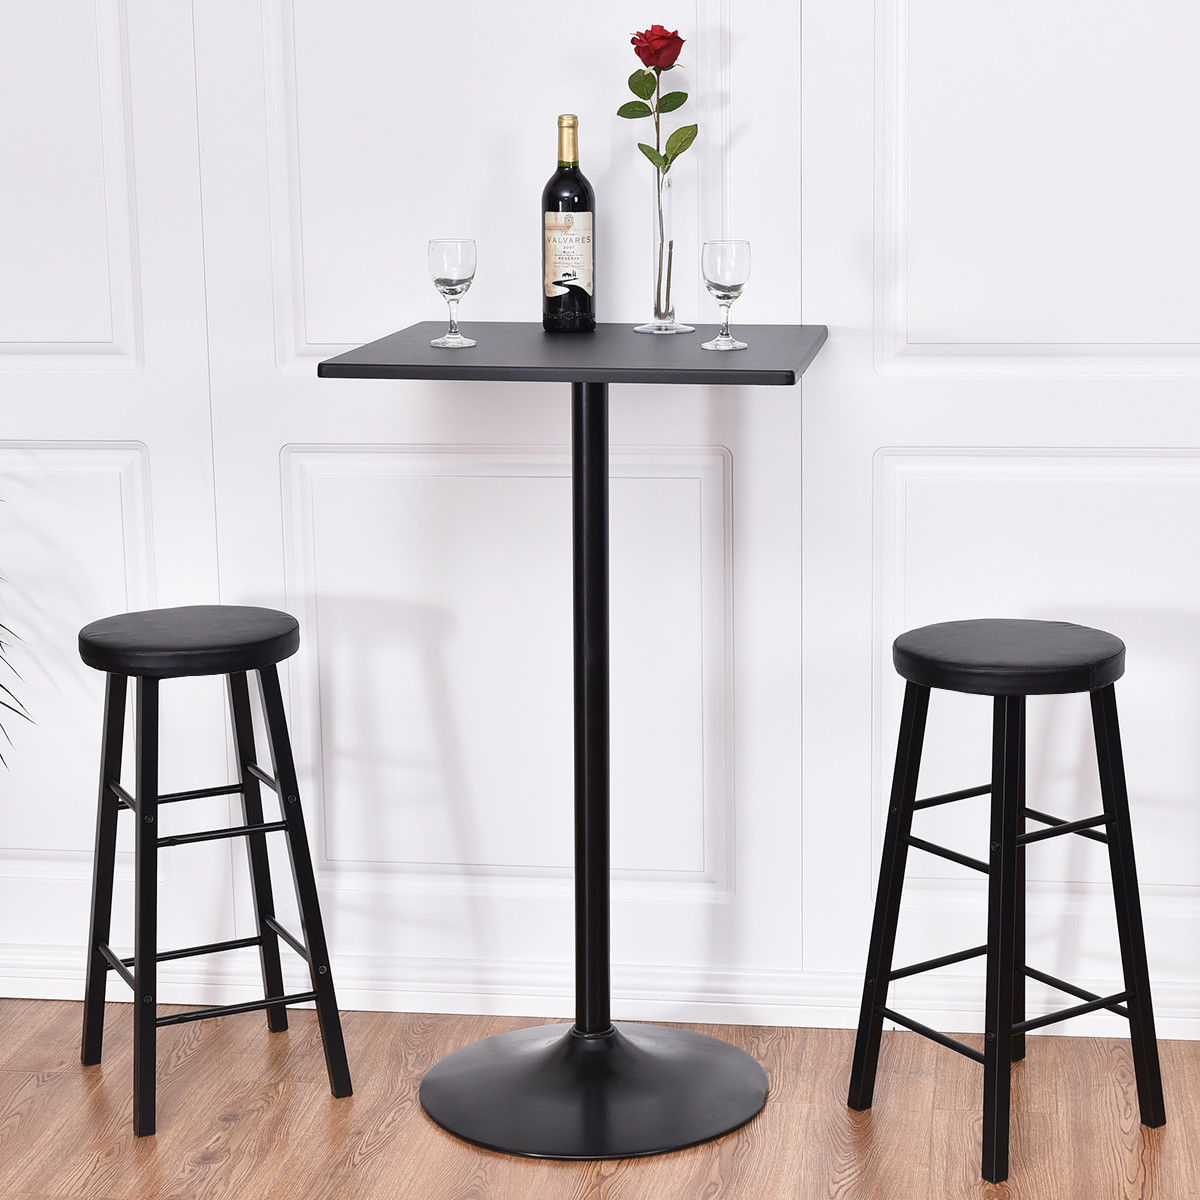 Costway 3pc Pub Table Top Set Bars Square Legs Stool Wood Black ,Pub Table Set, Kitchen Dining Furniture by Costway